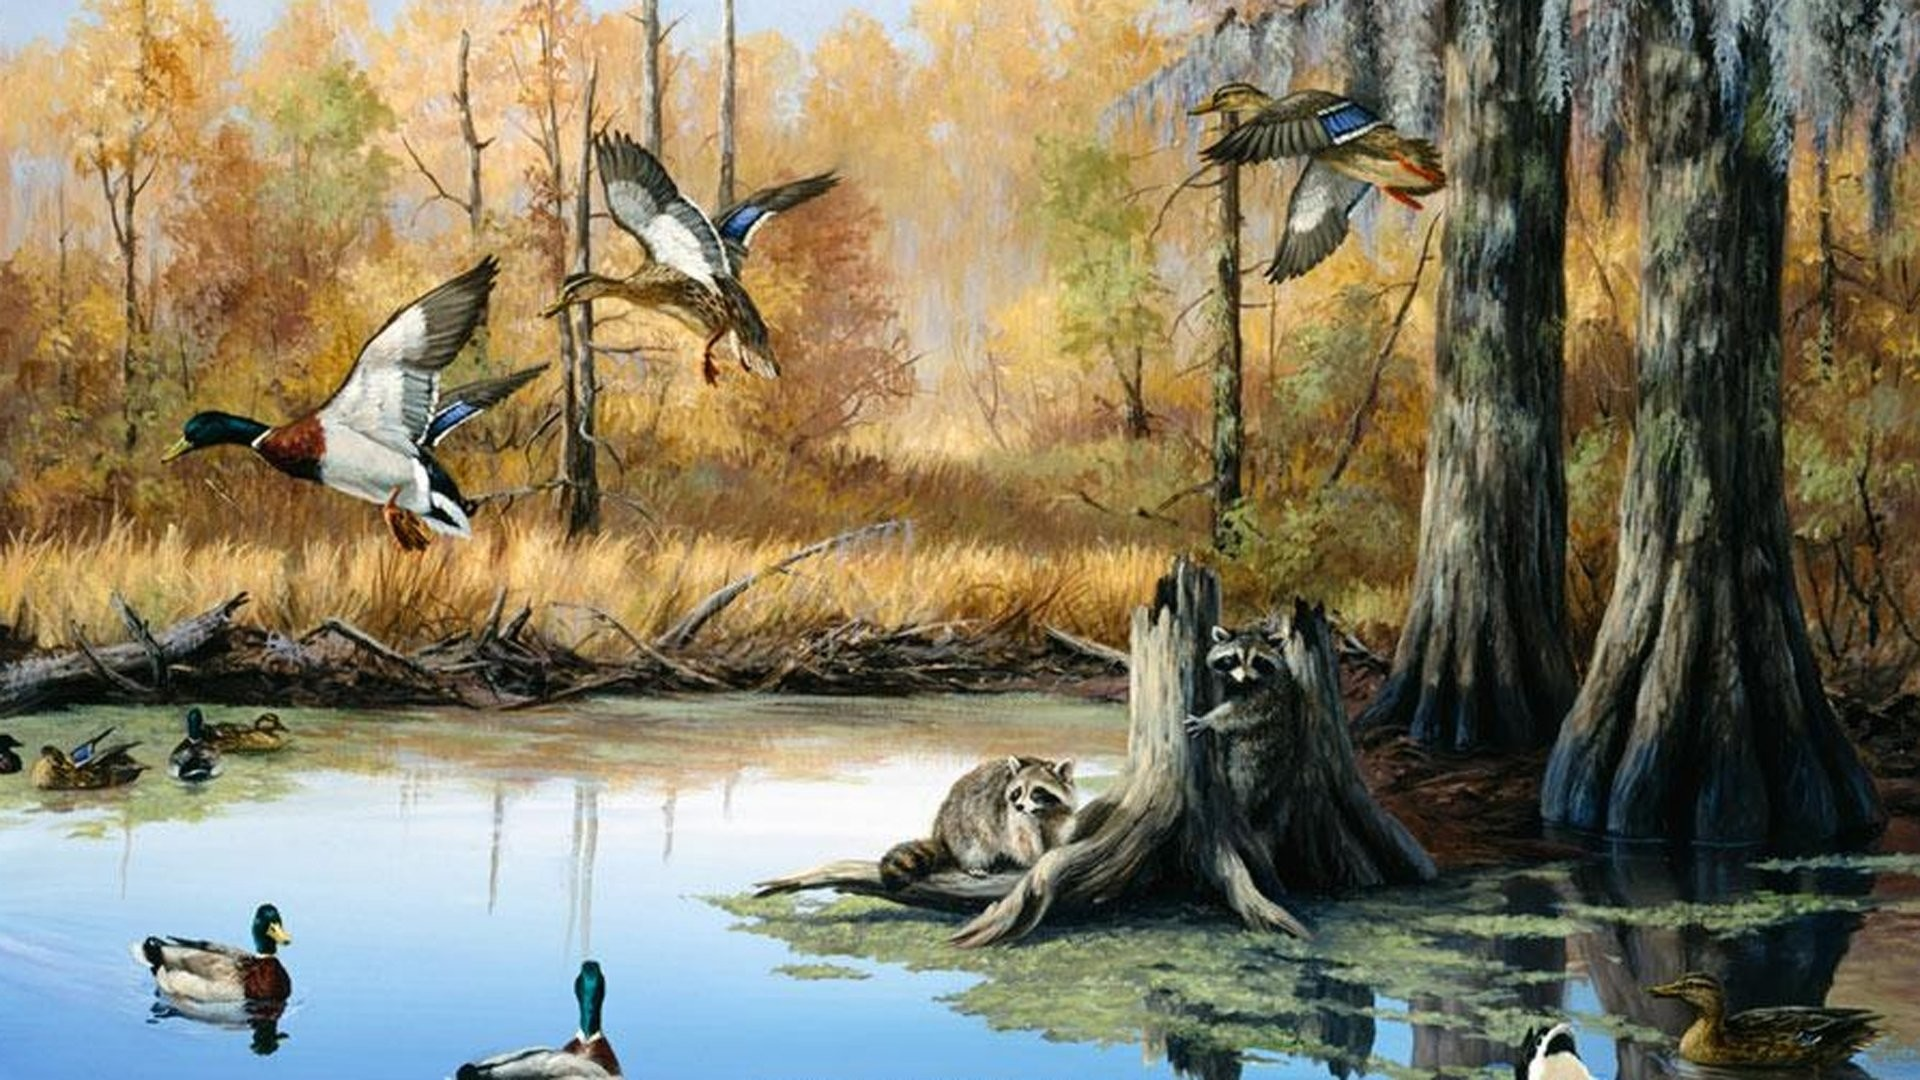 1920x1080 Awesome Duck Hunting Wall Murals Nice Design